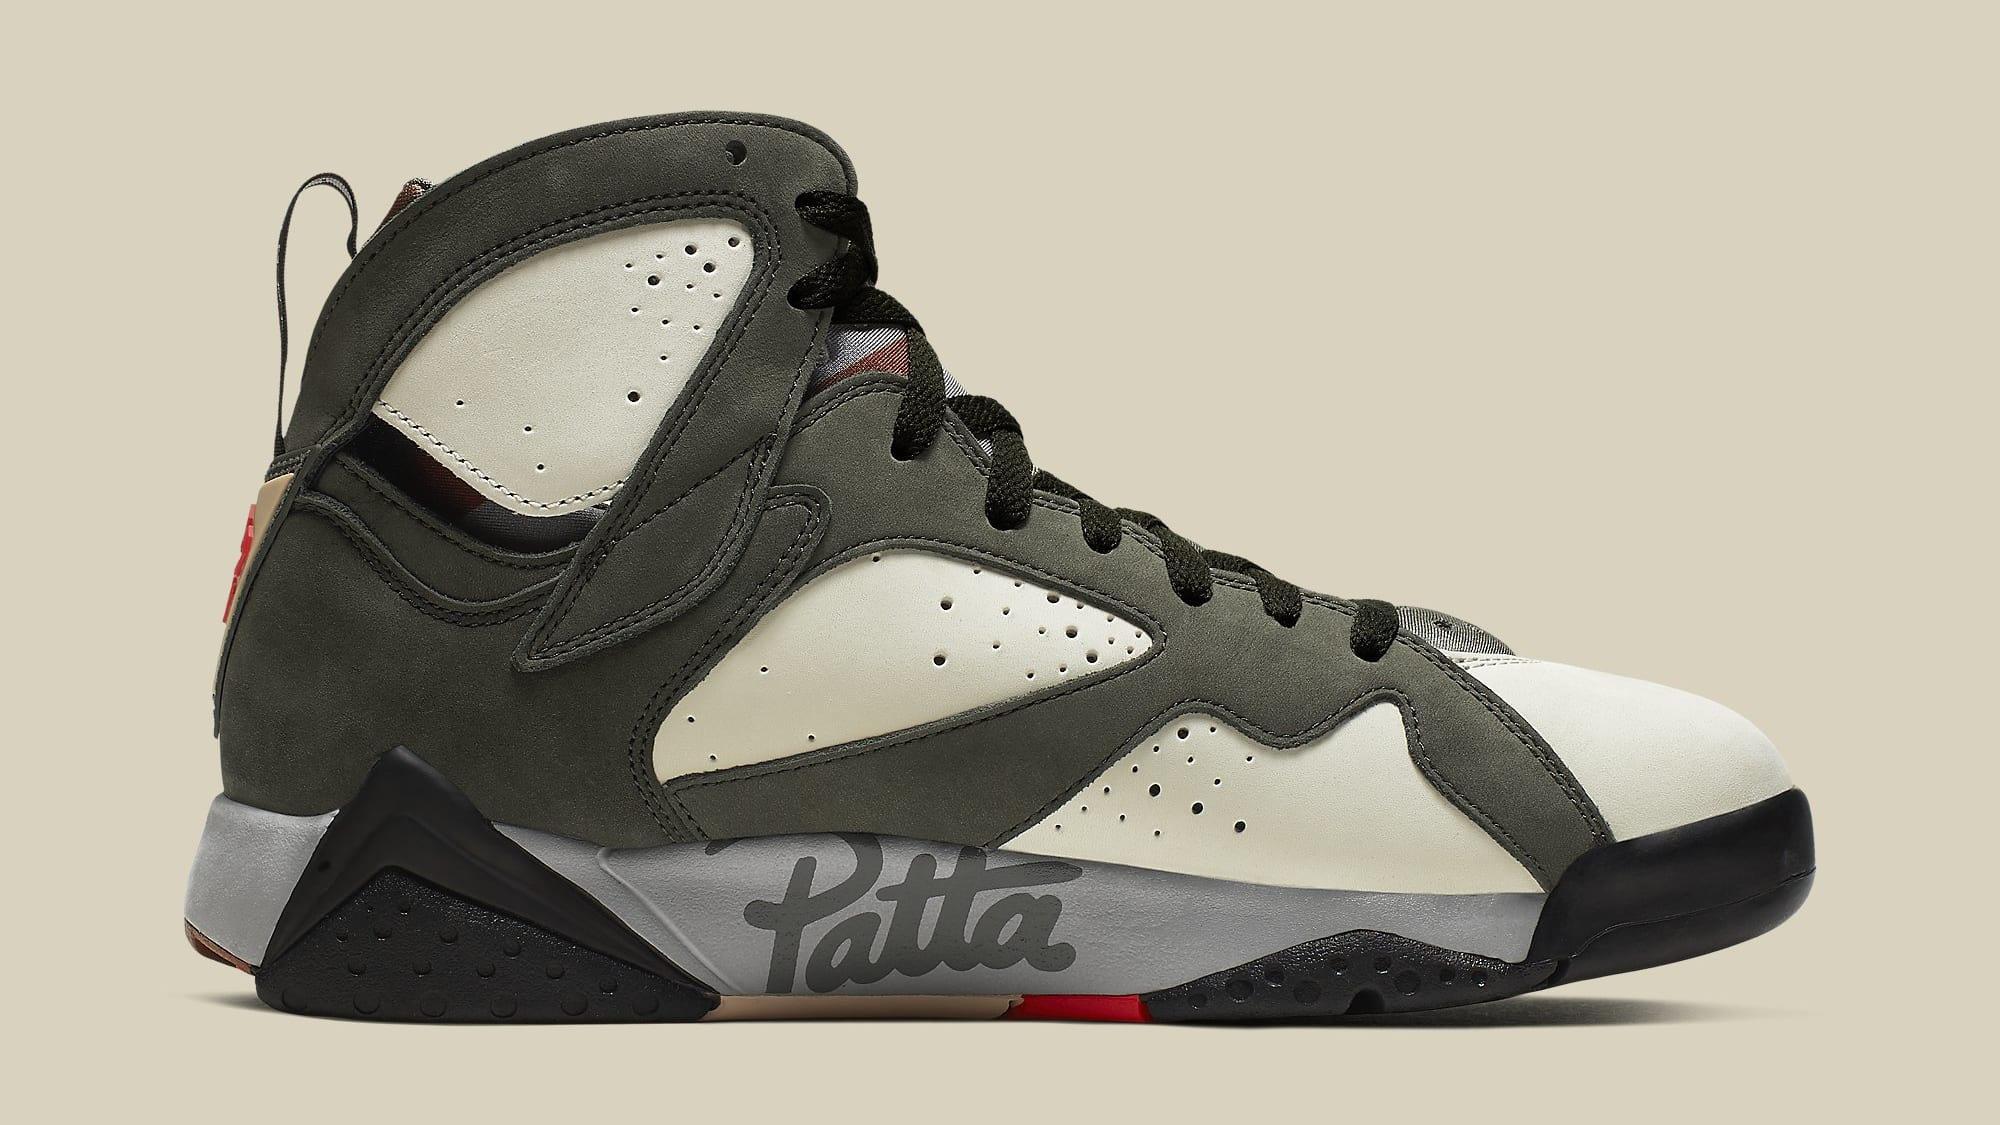 Patta x Air Jordan 7 VII Icicle Release Date AT3375-100 Medial